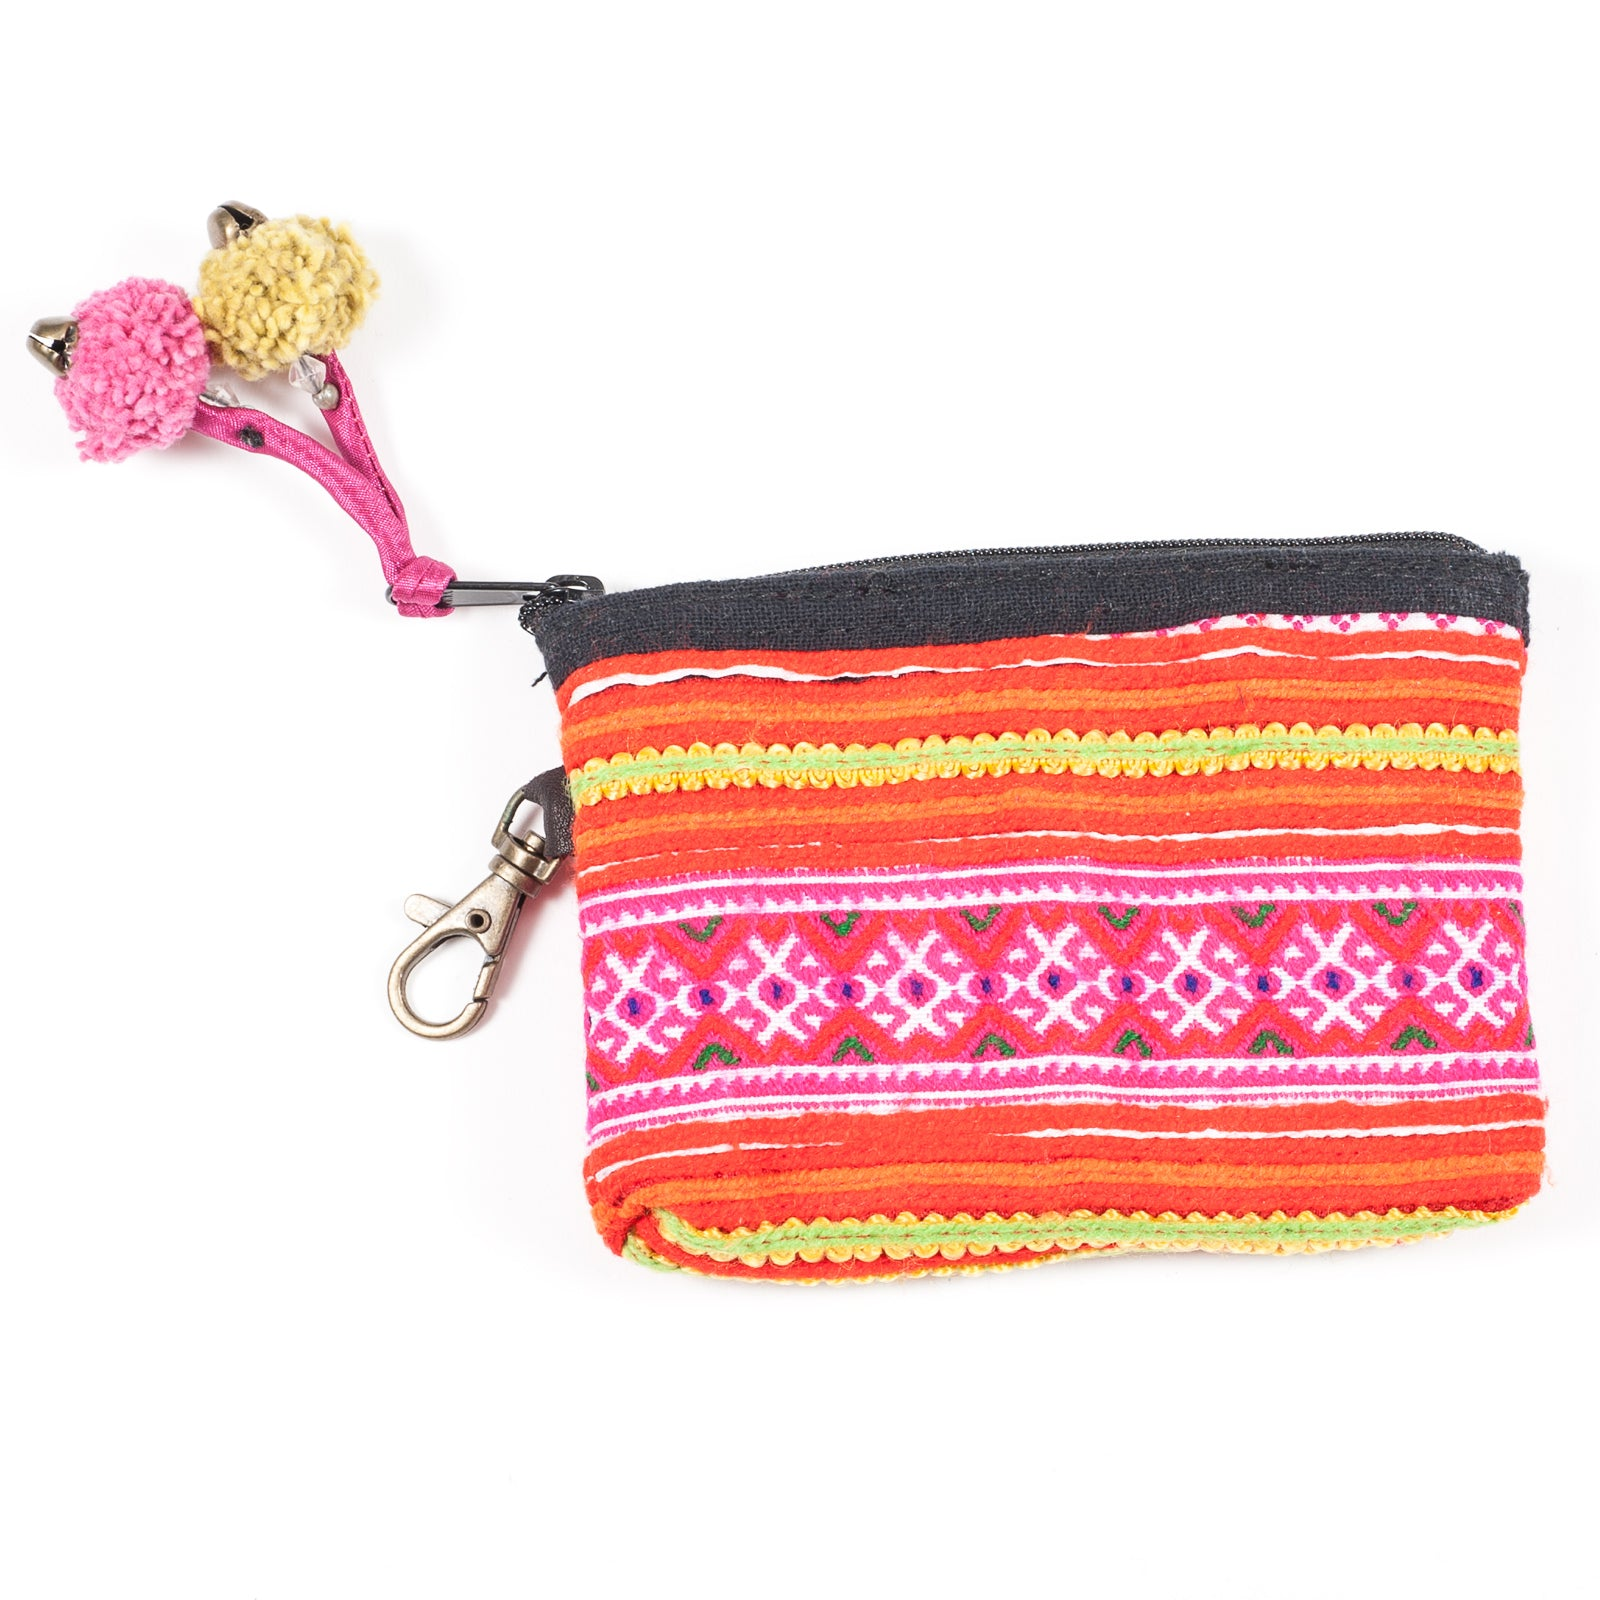 Handmade Tobacco Pouch Hmong Hill Tribe One of a Kind Hippie Boho  Small Tobacco Pouch Leather and vintage embroidery